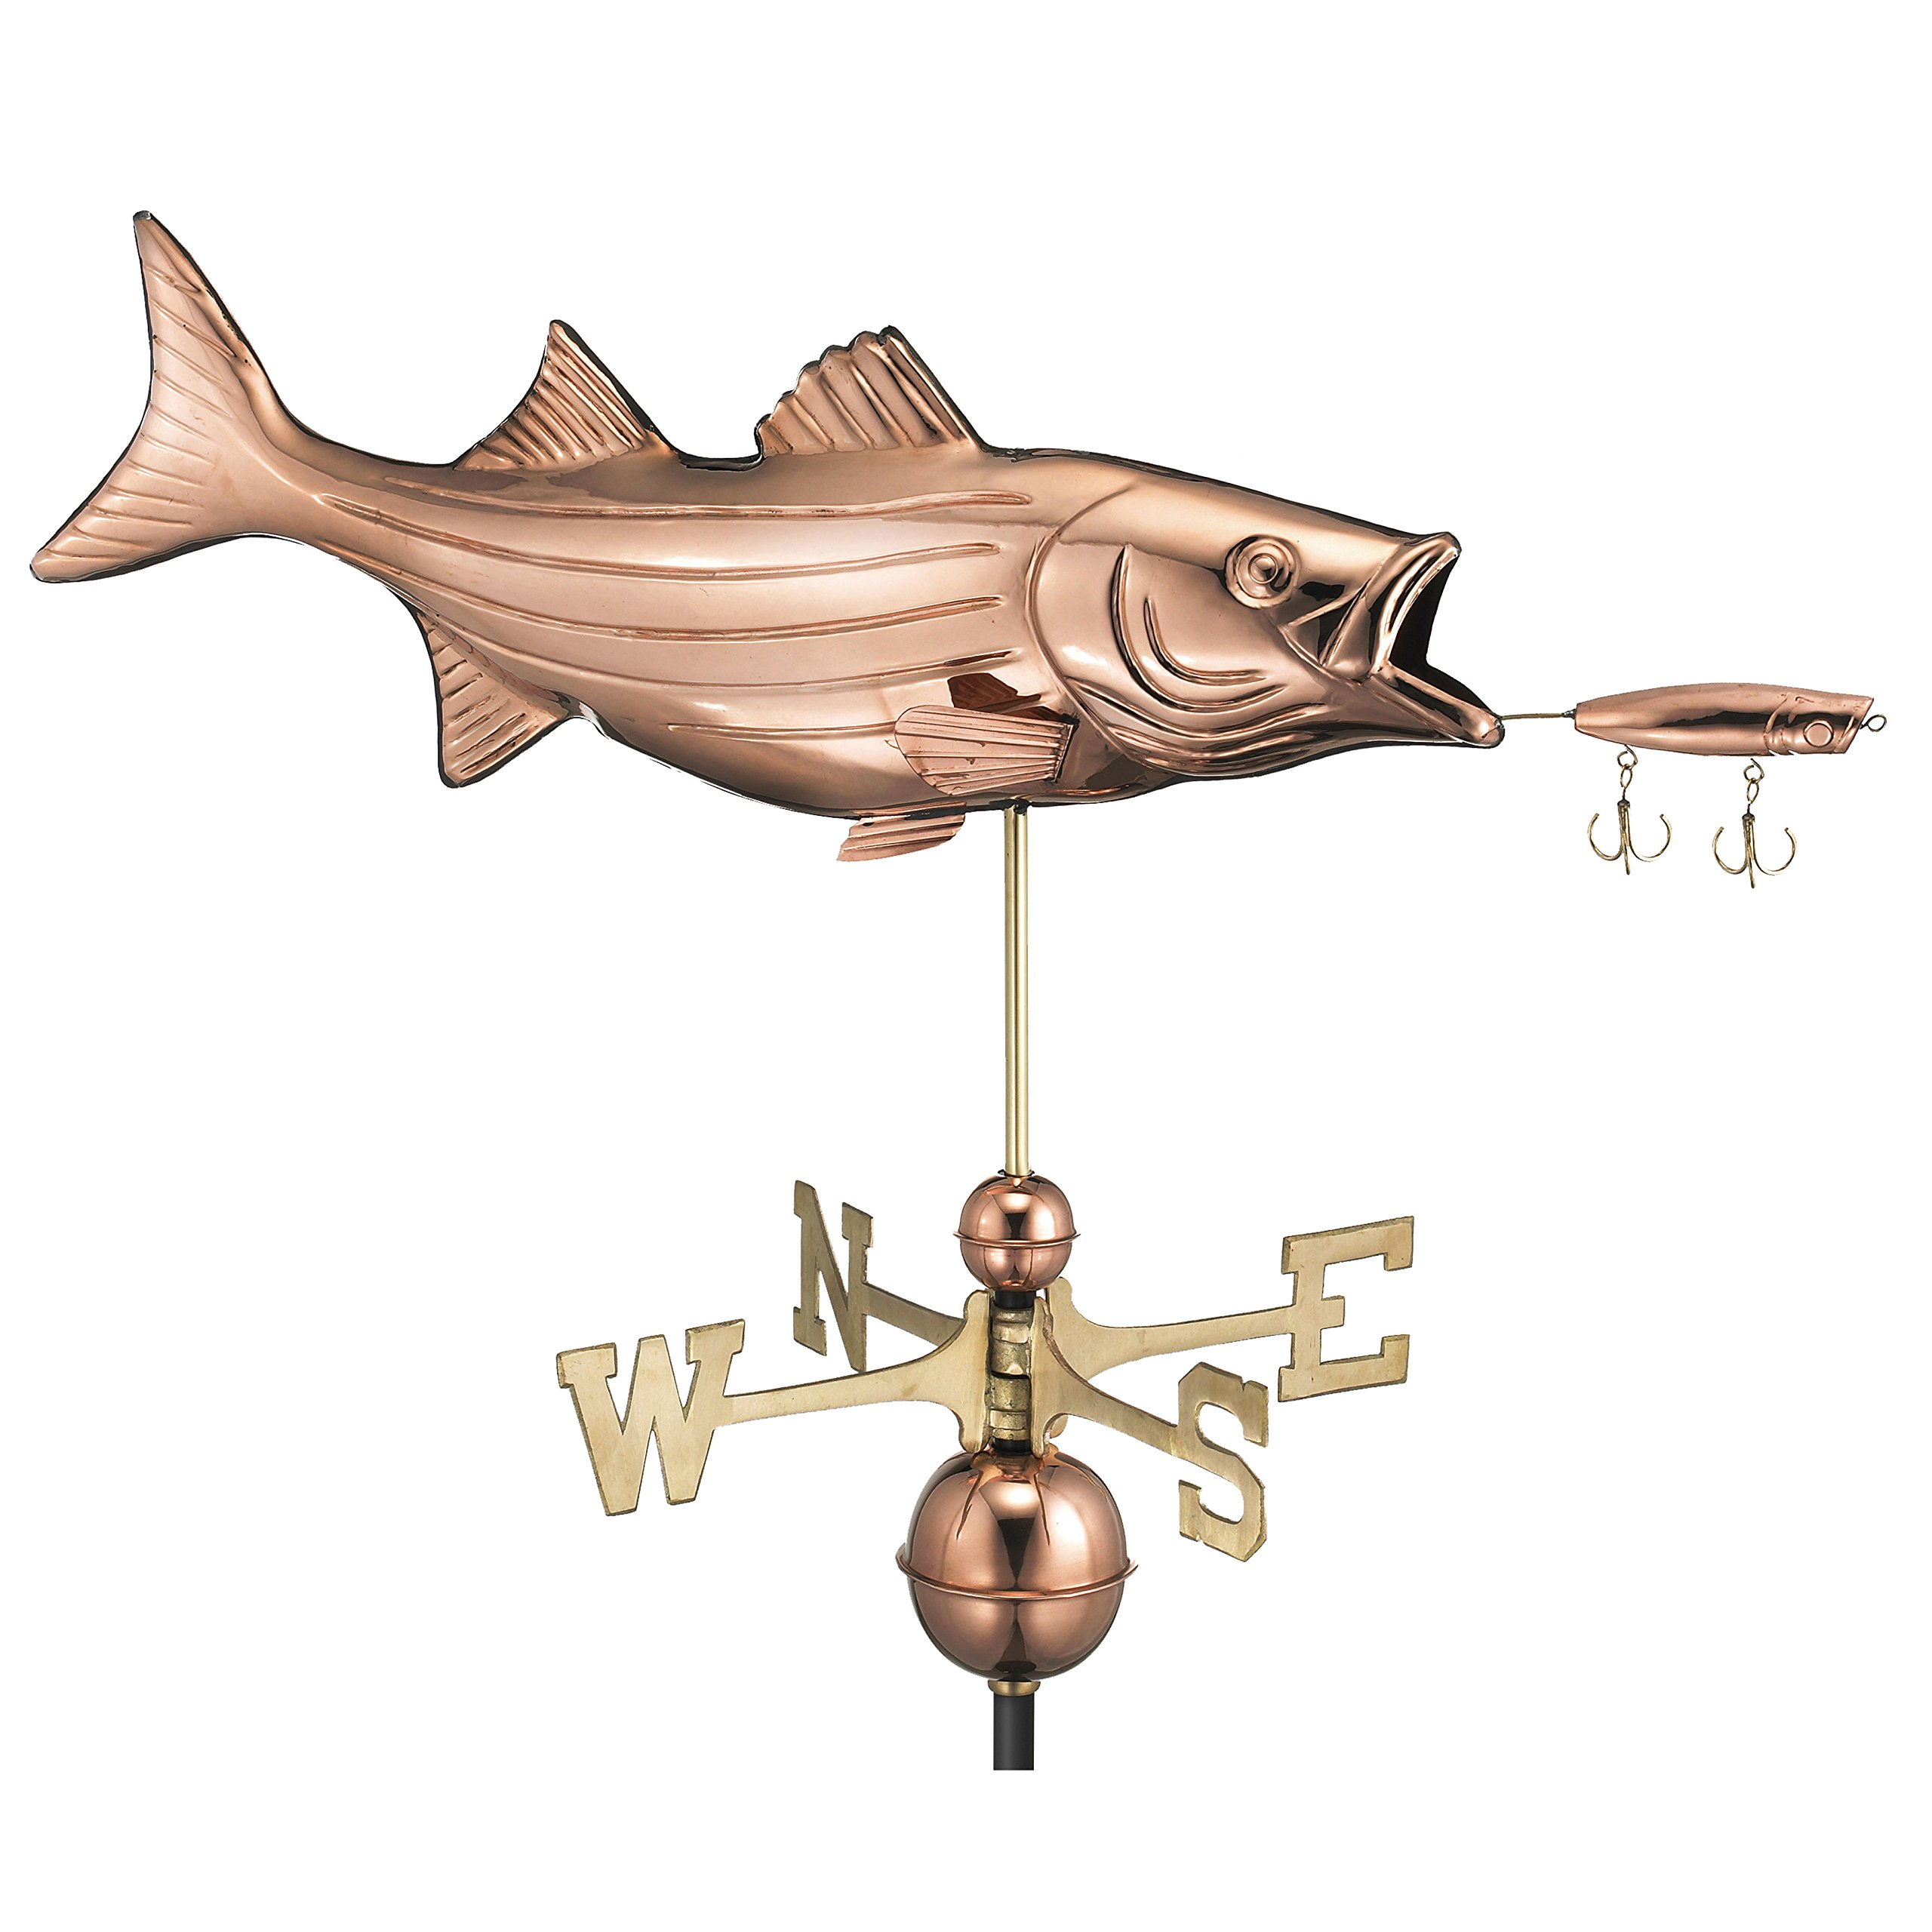 Good Directions Bass with Lure Weathervane, Pure Copper, Fish